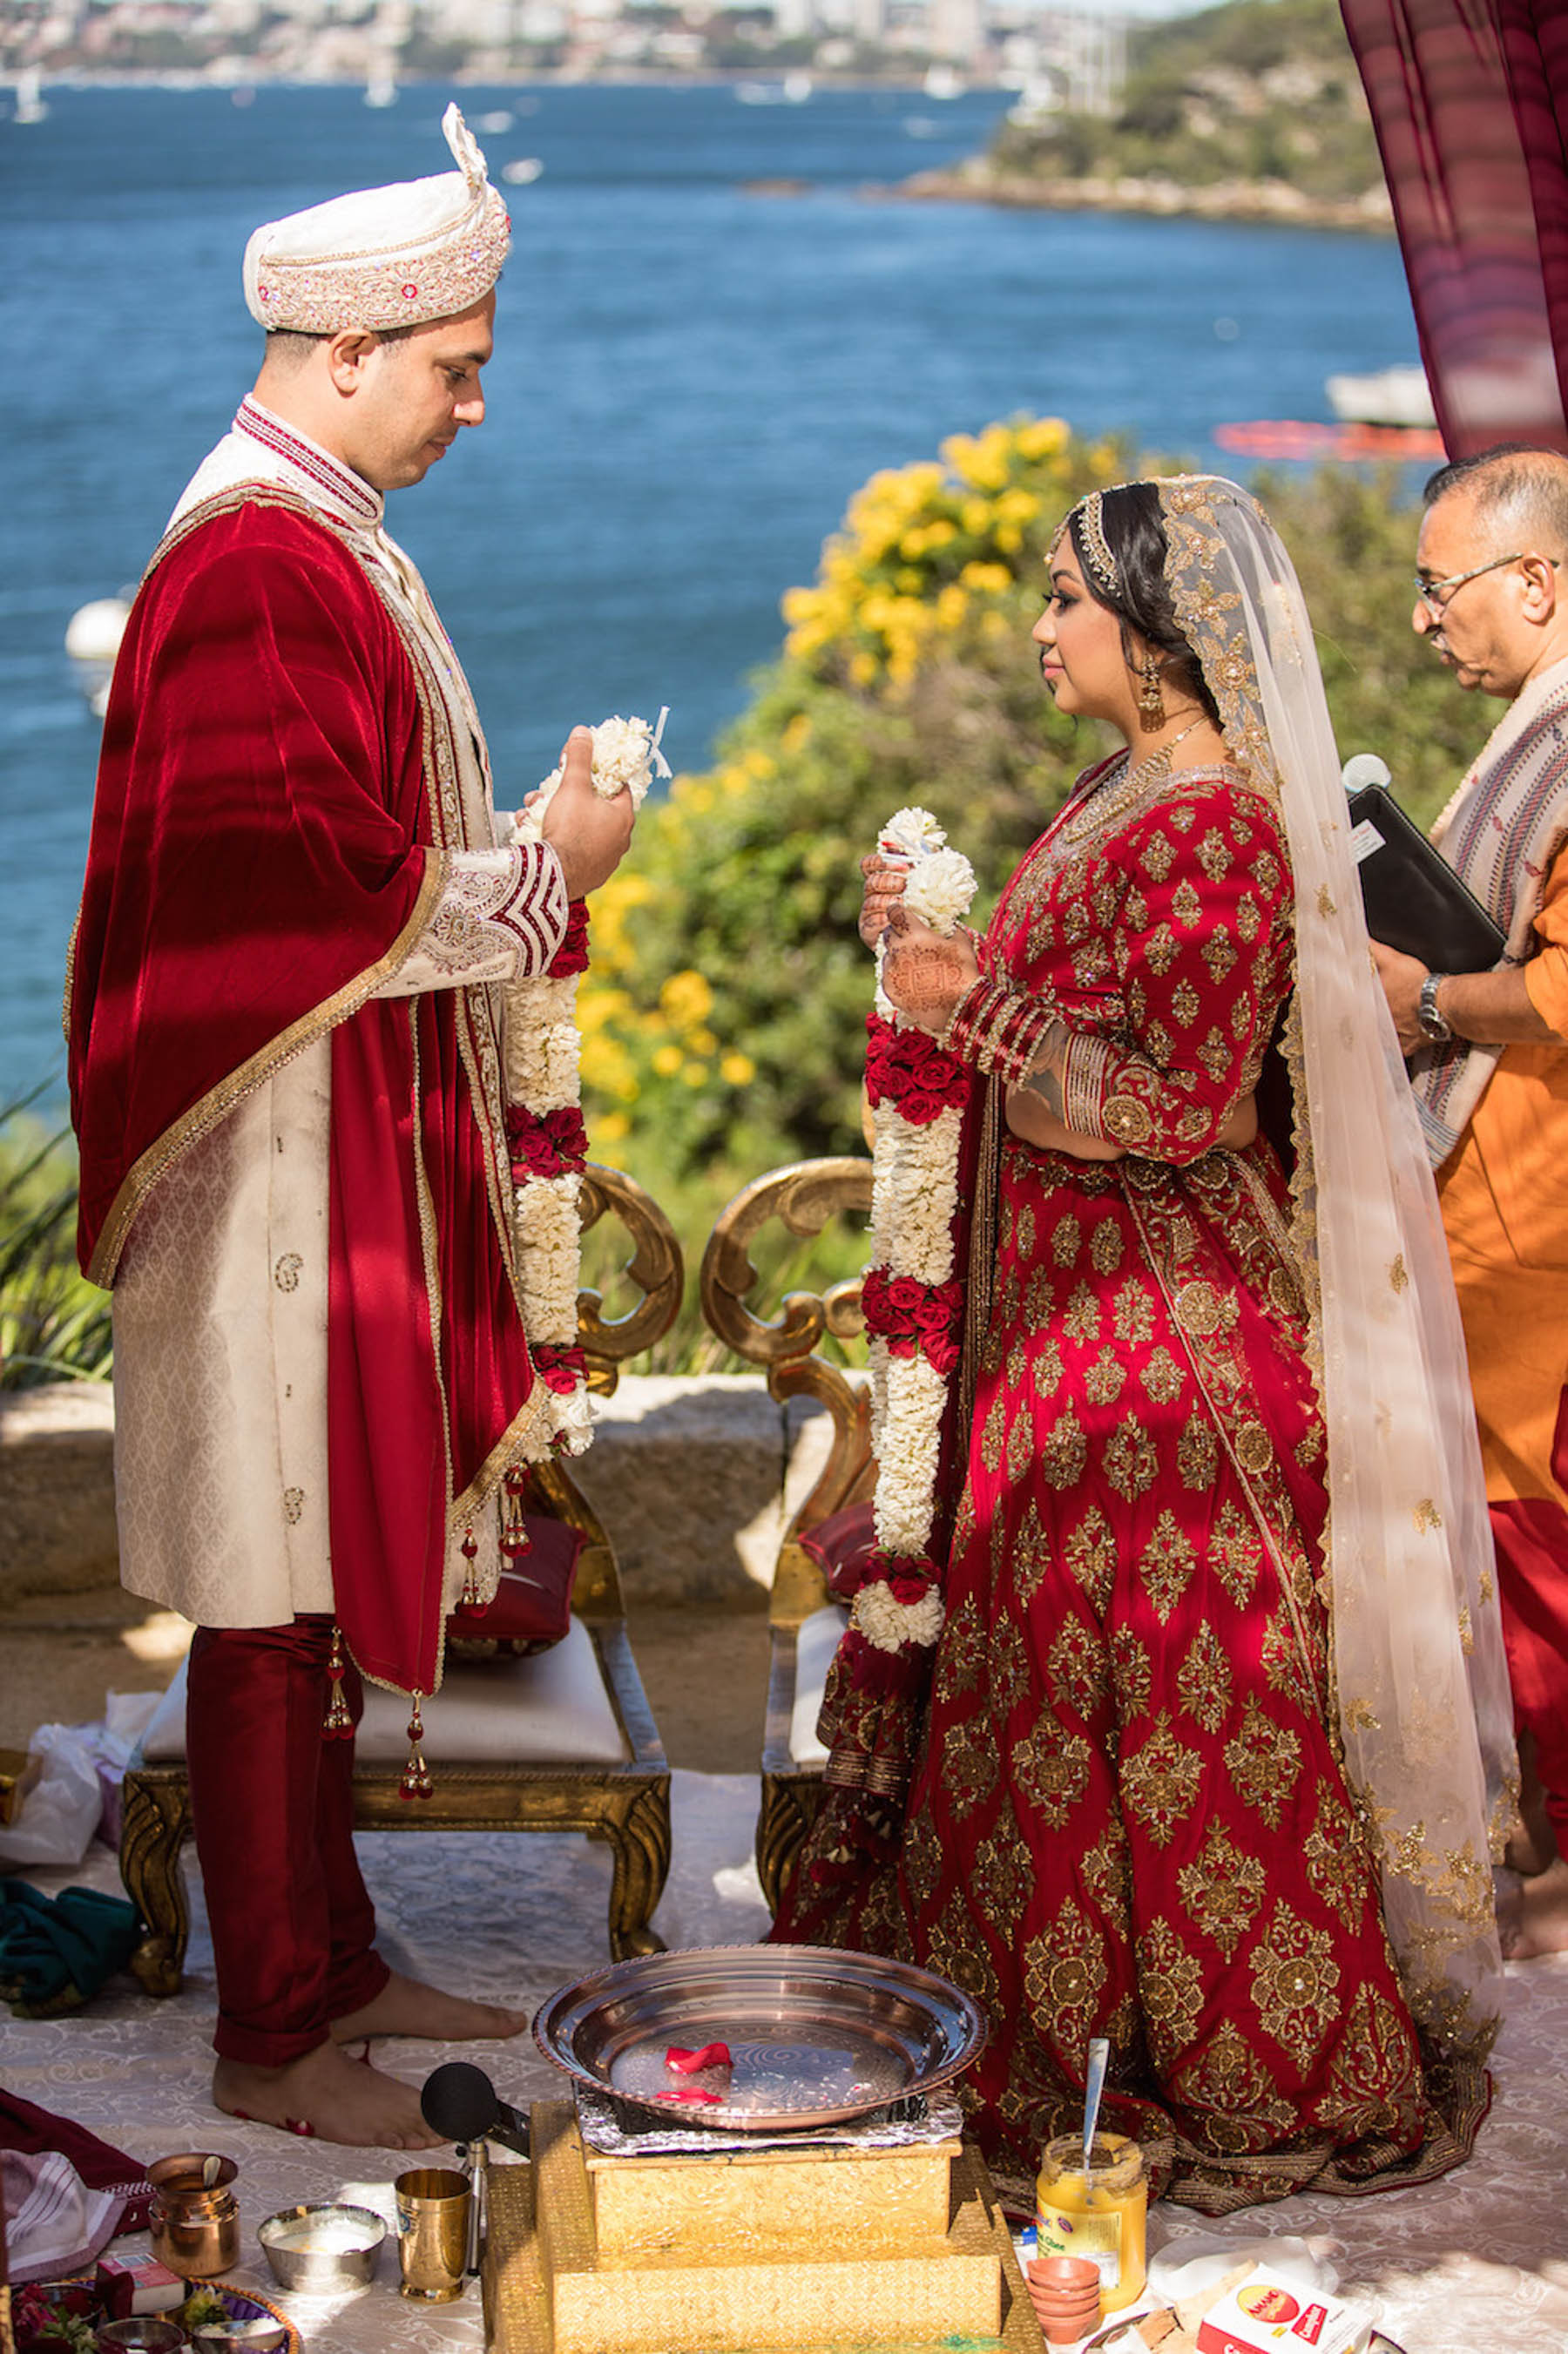 Autumn turned out to be the ideal climate for Jon and Sheena to have their elegant outdoor Indian wedding in the courtyard of Seargents Mess in Sydney.